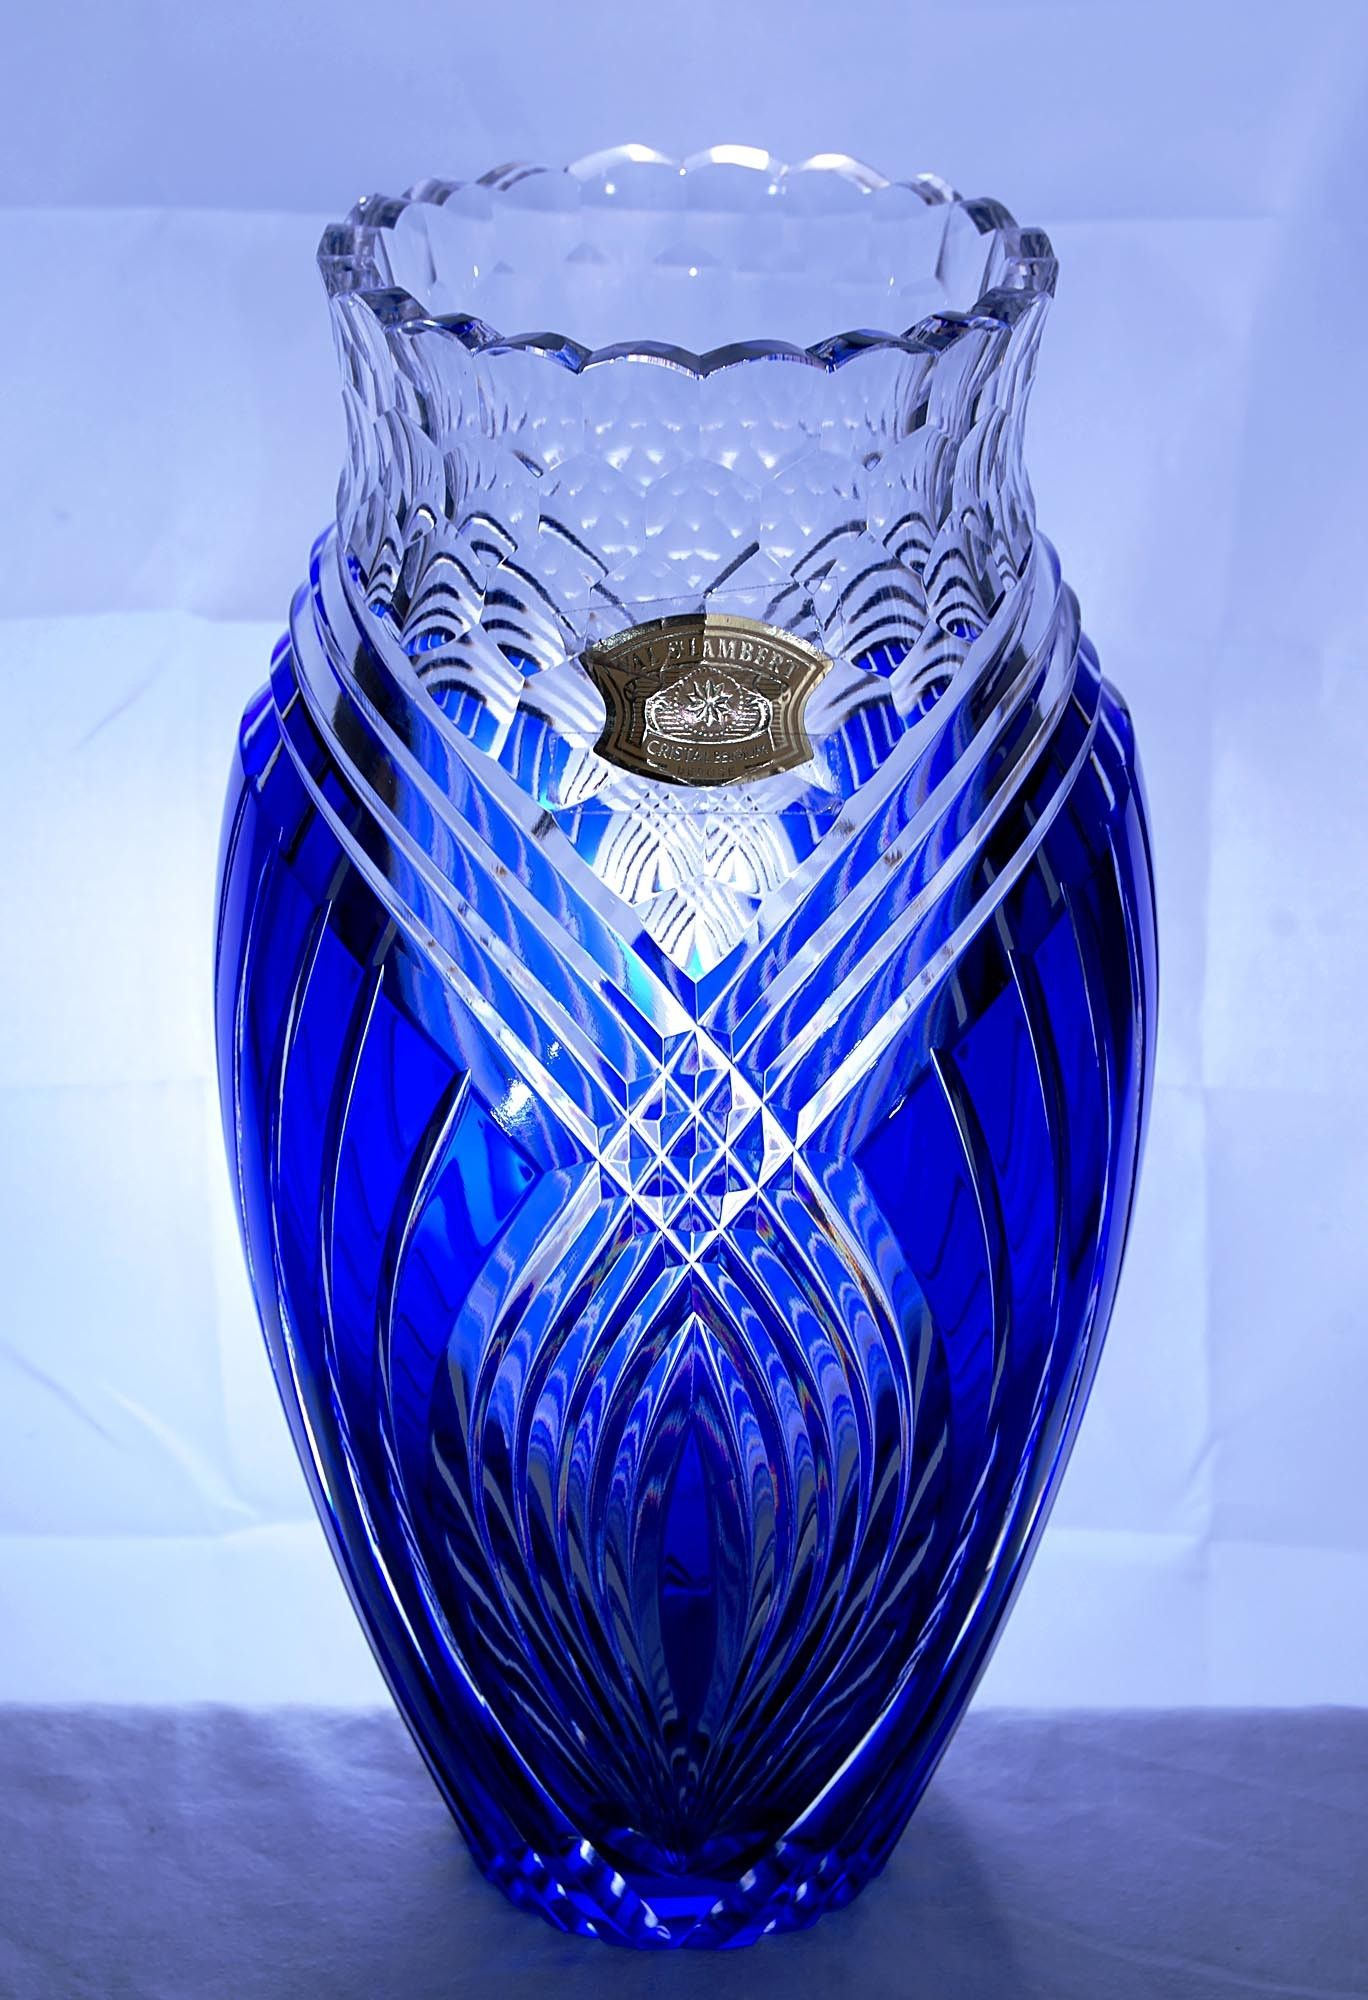 be lovely cobalt artwire collectibles late sold fla on pair lusters panama release and antiques of clear blue this a cut glass saturday bohemian vase an at will in year century jan collection city to